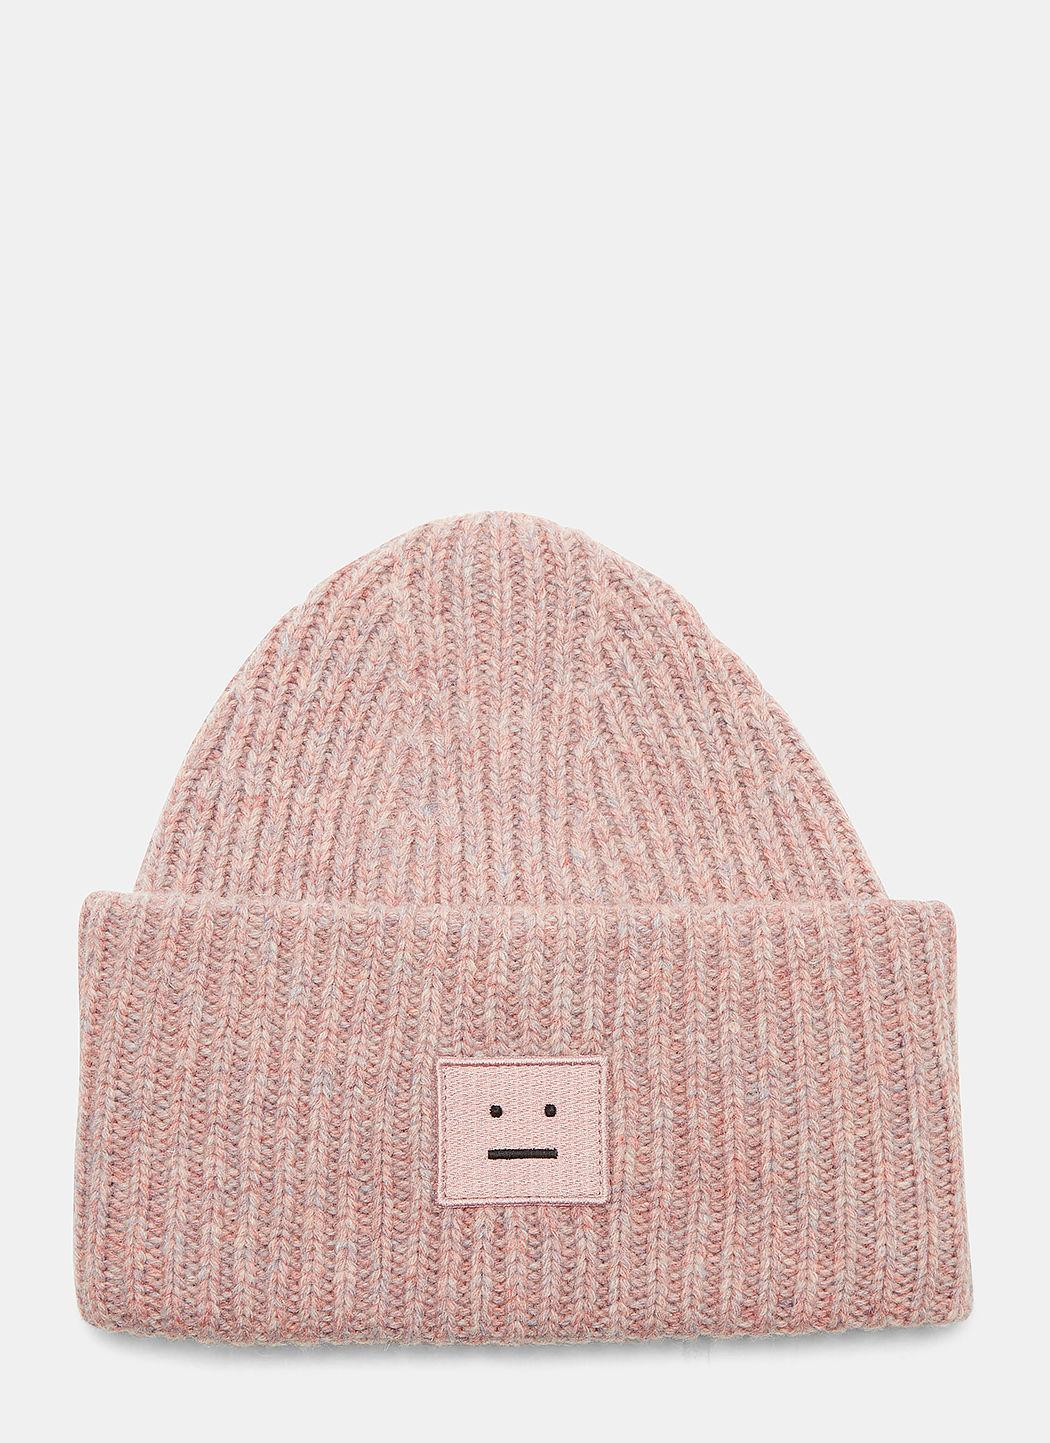 Acne Studios Pansy W Large Face Hat In Pink